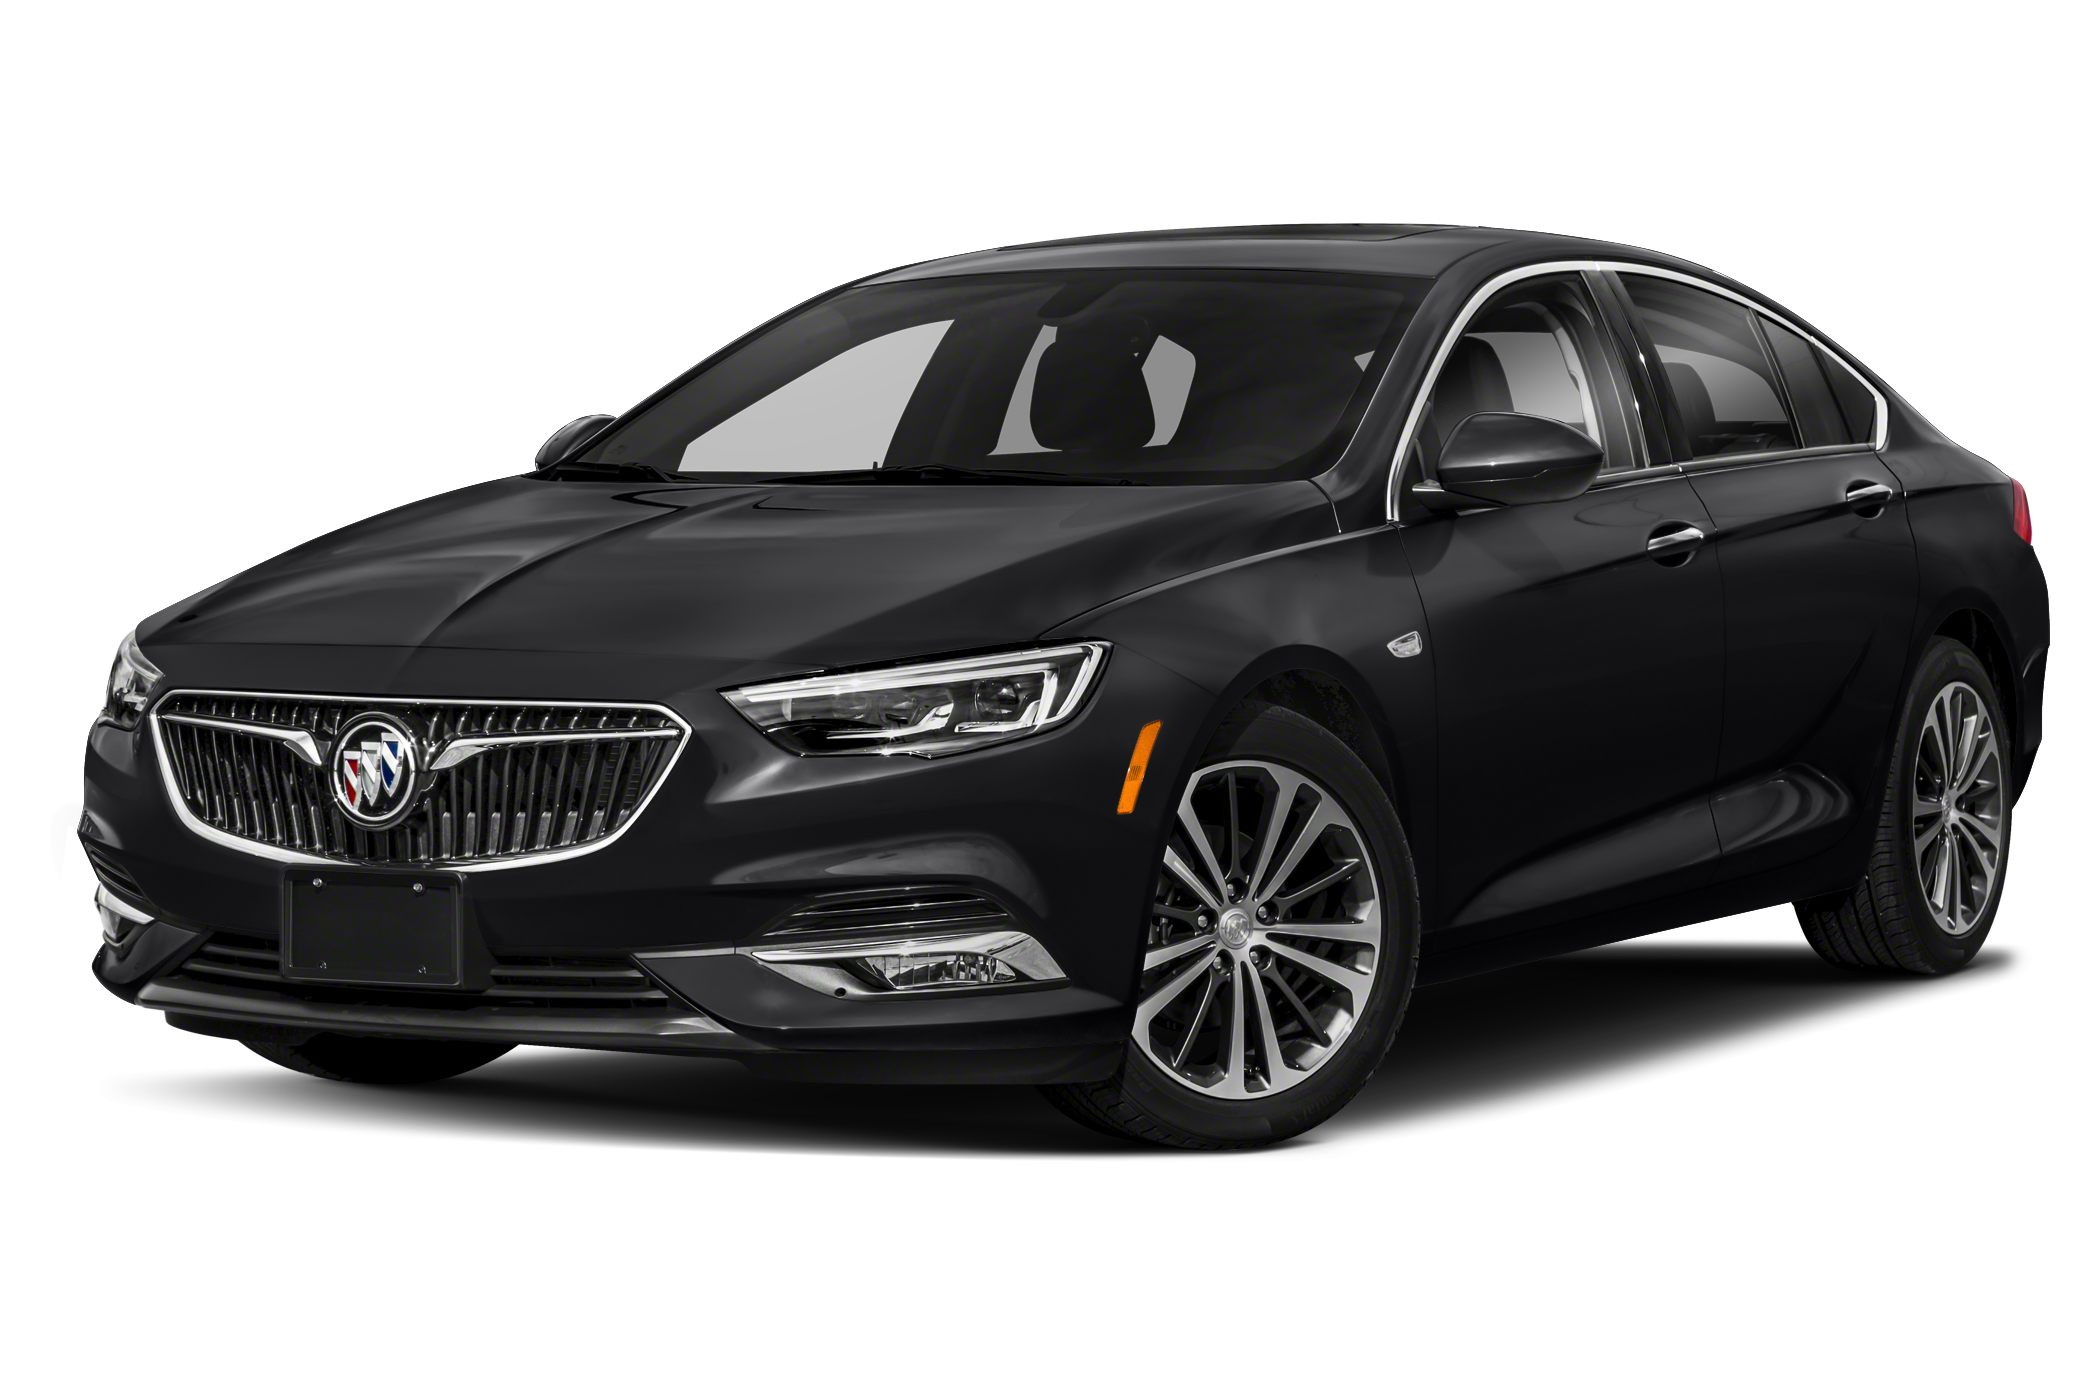 2020 Buick Regal Sportback Specs And Prices